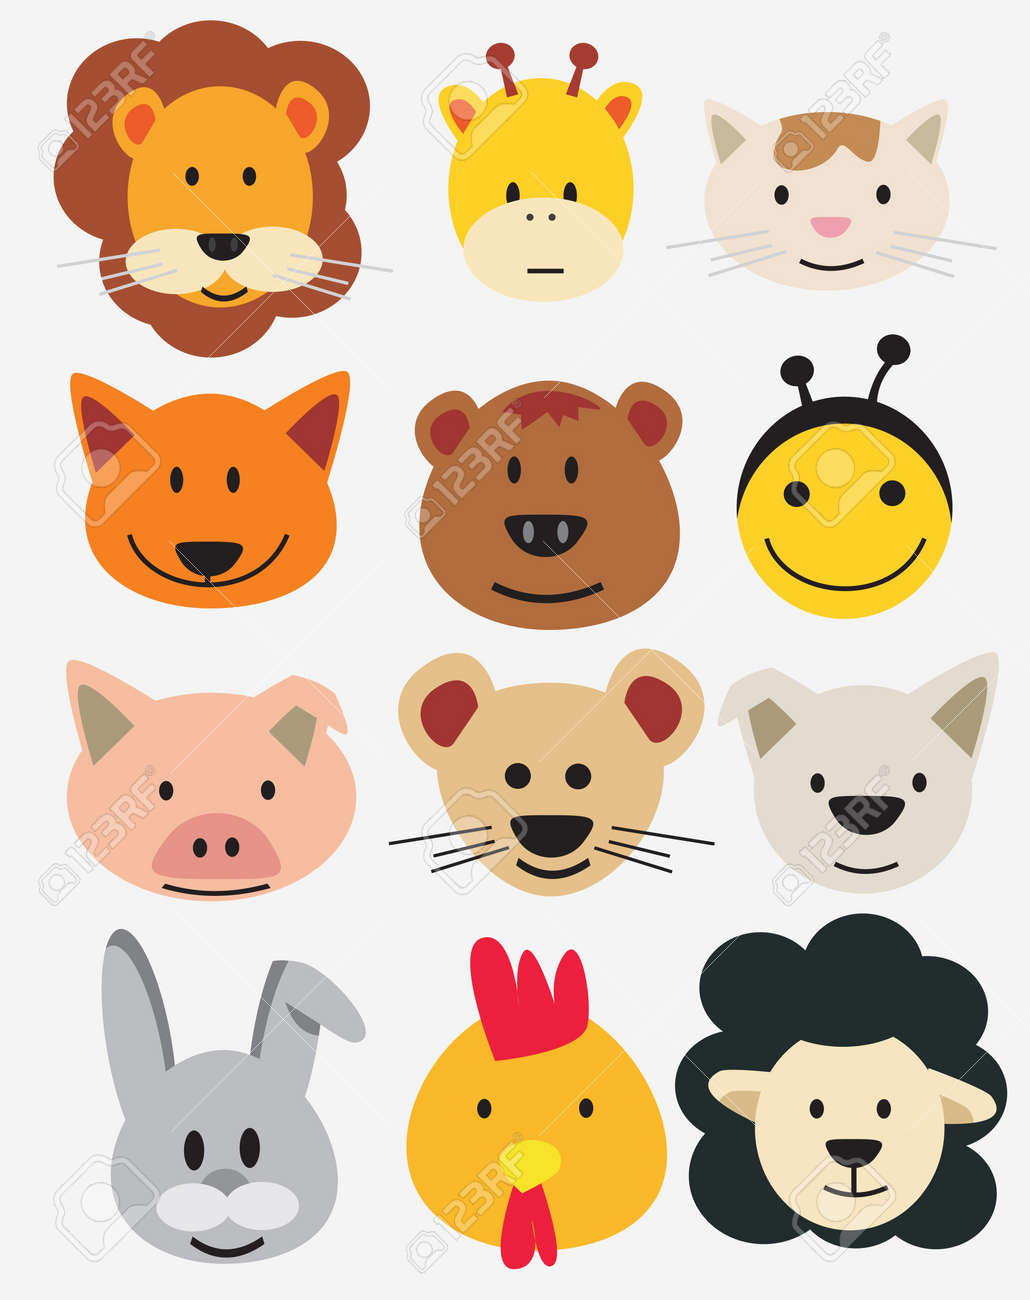 Illustration of animal faces. Stock Vector - 11087695